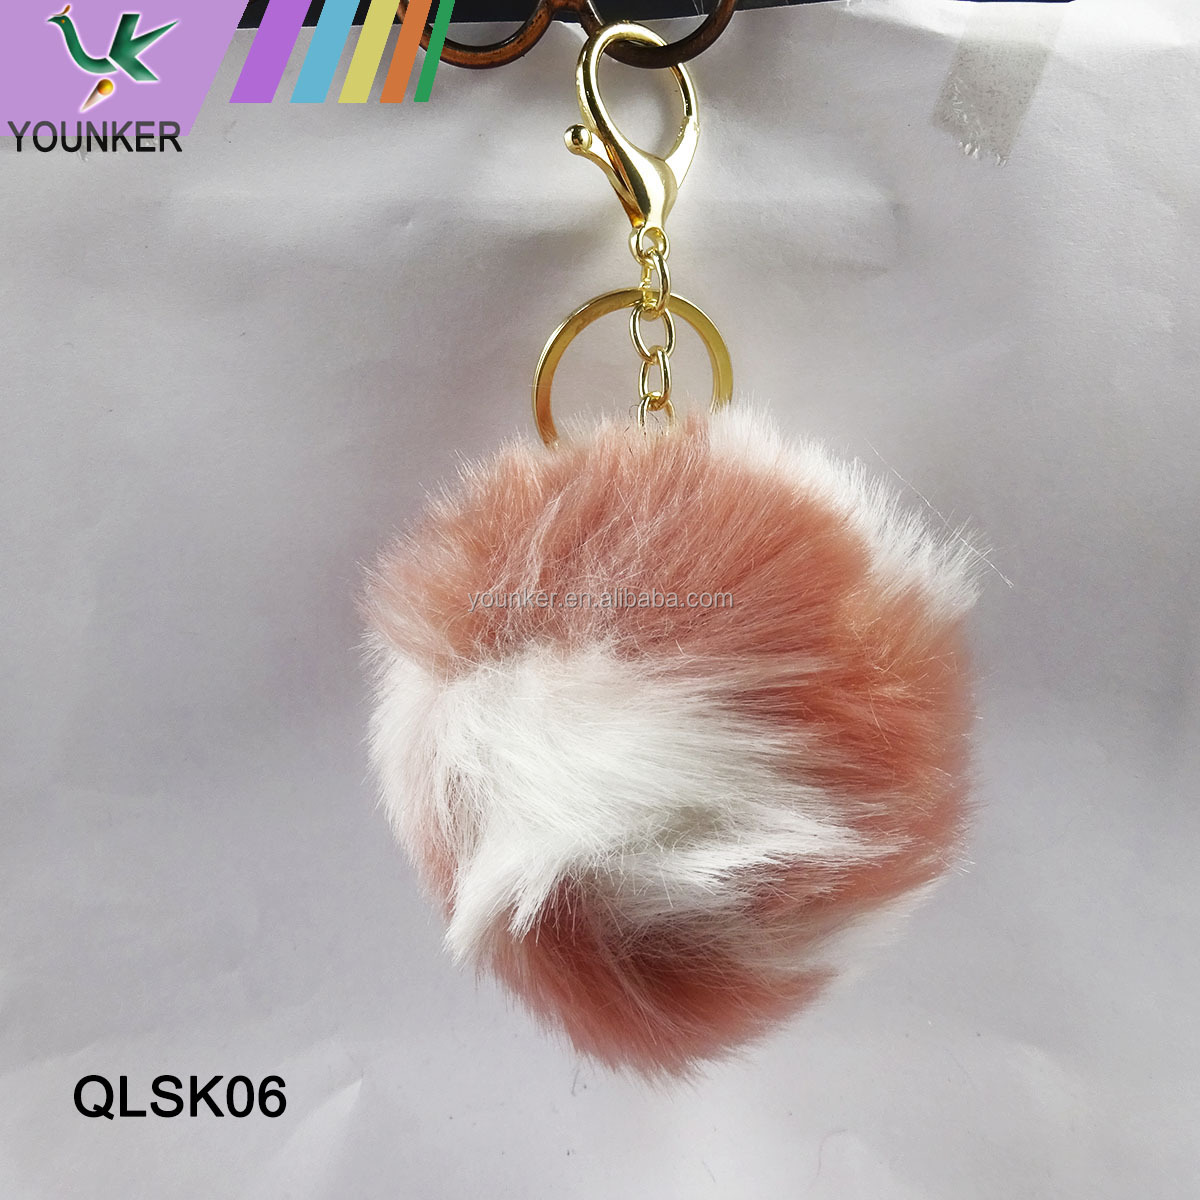 Hot Selling Assorted Color Fur Ball Pom Poms Keychain For Handbag